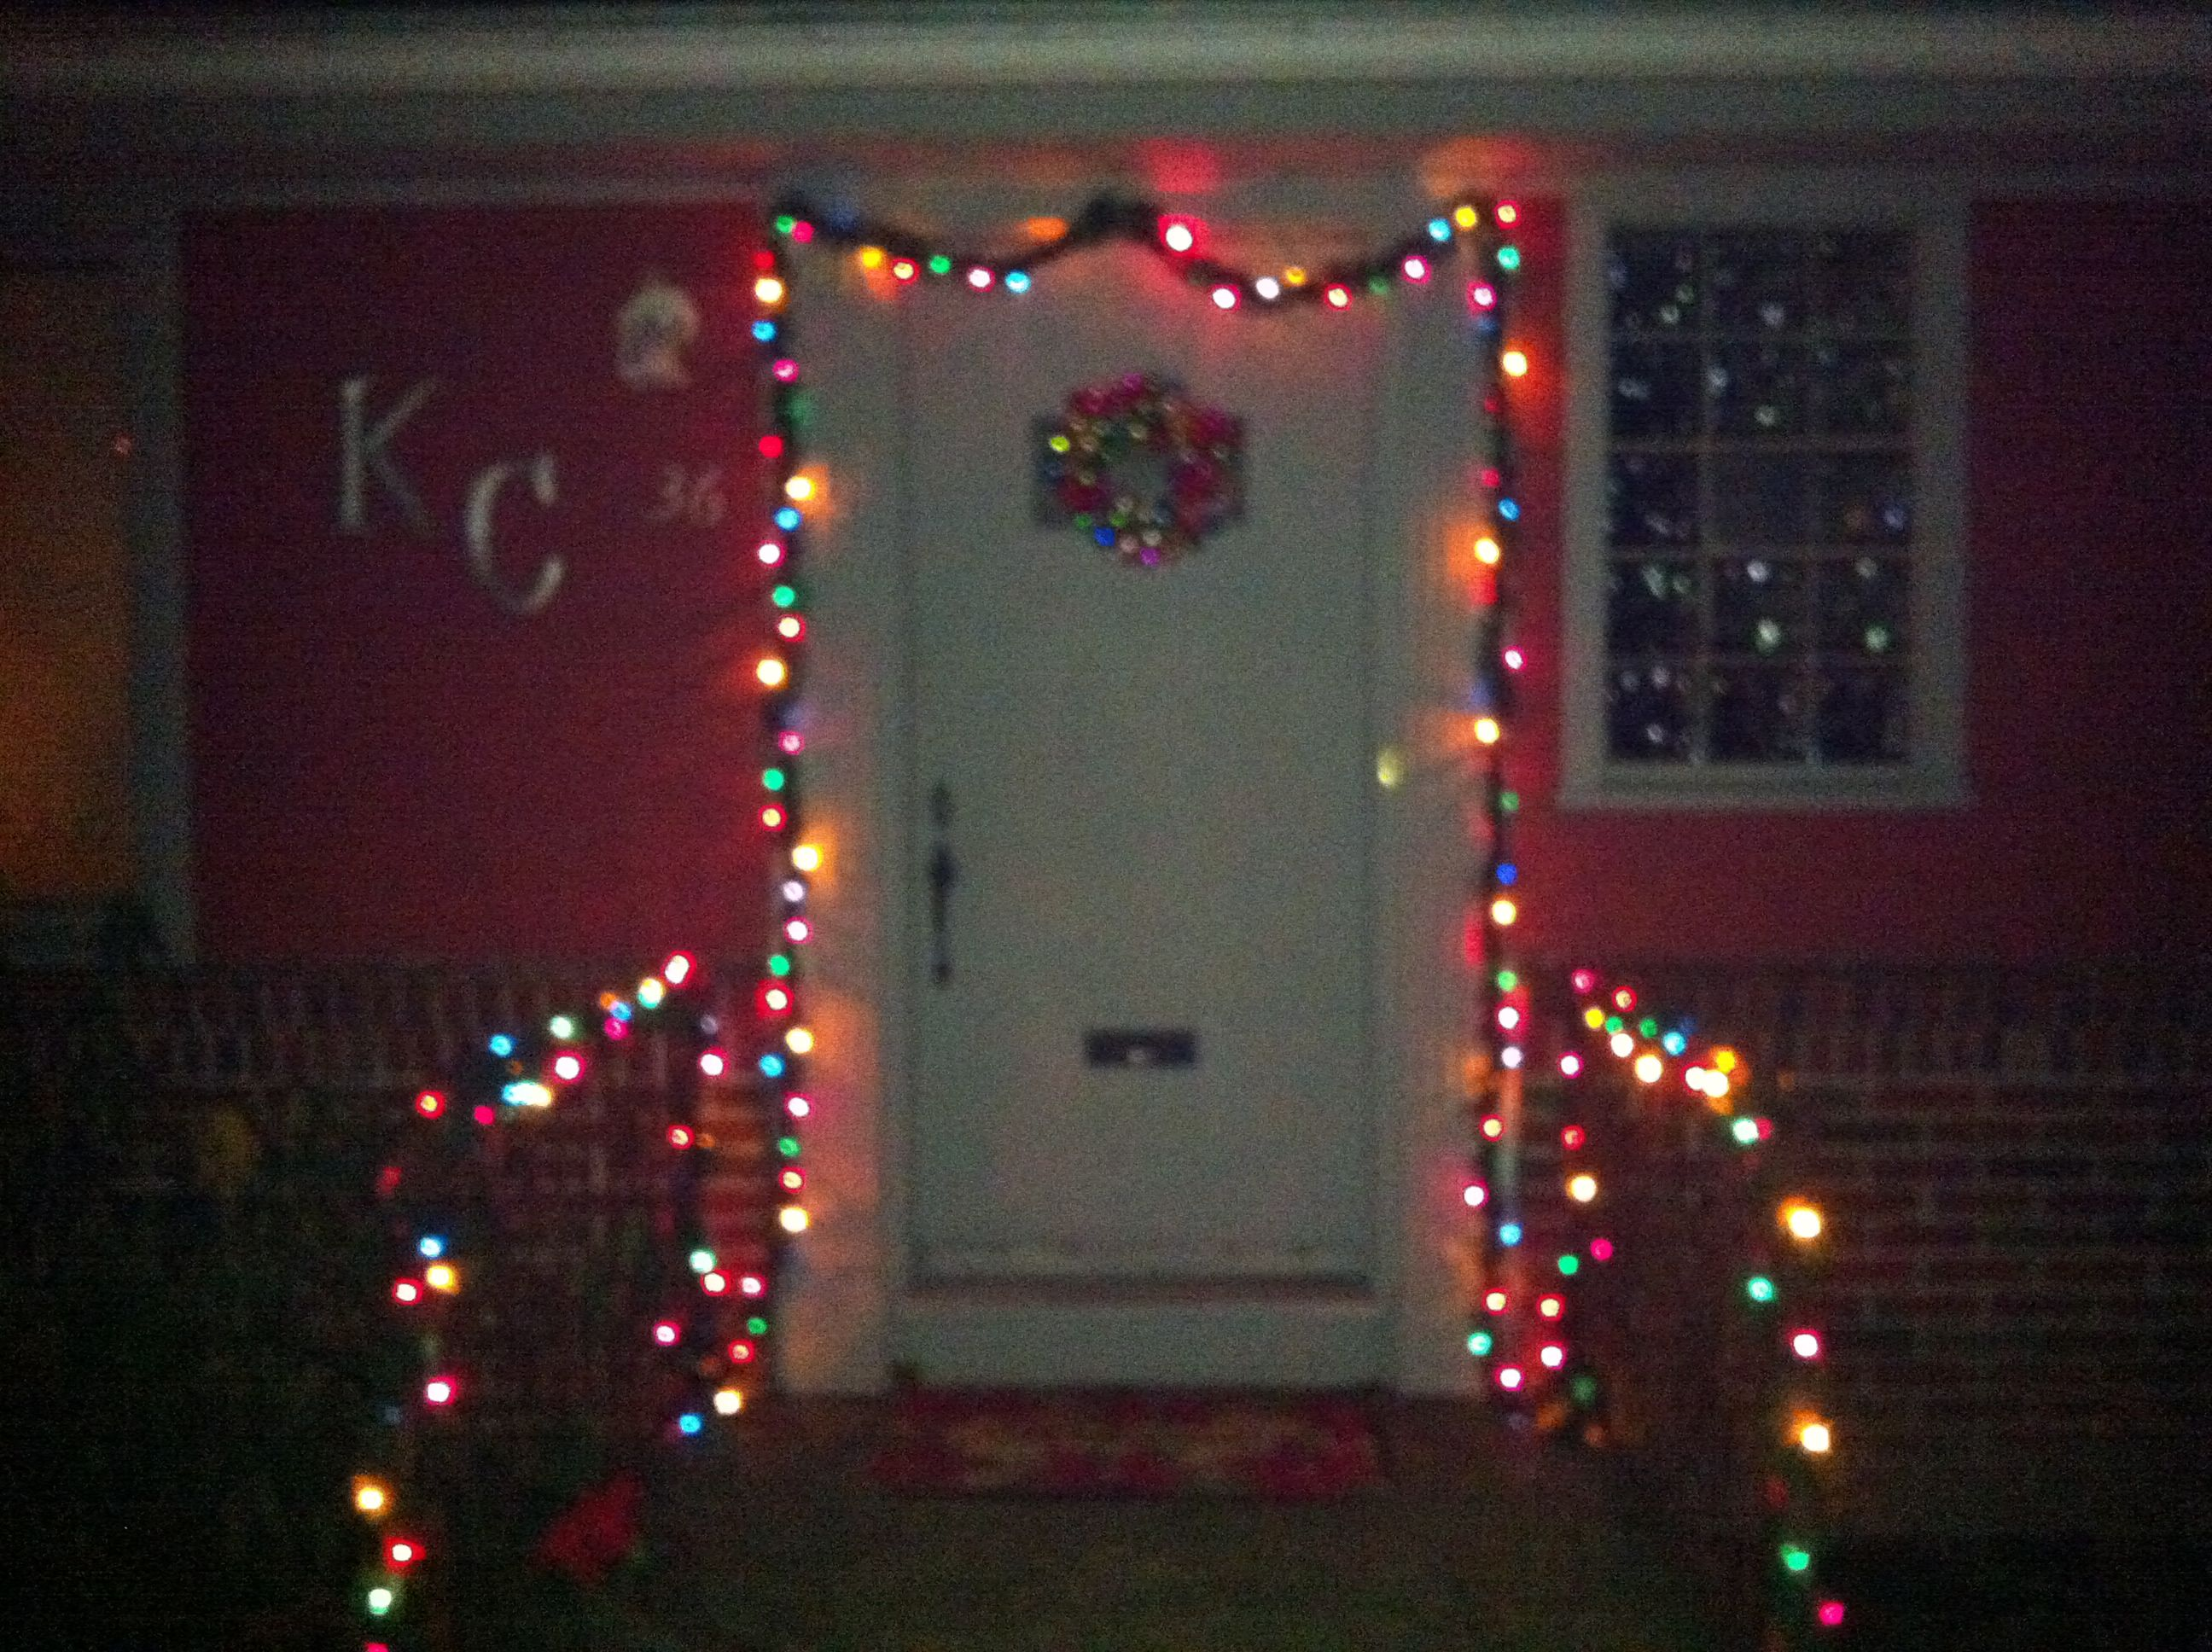 loved my entry over the holidays.